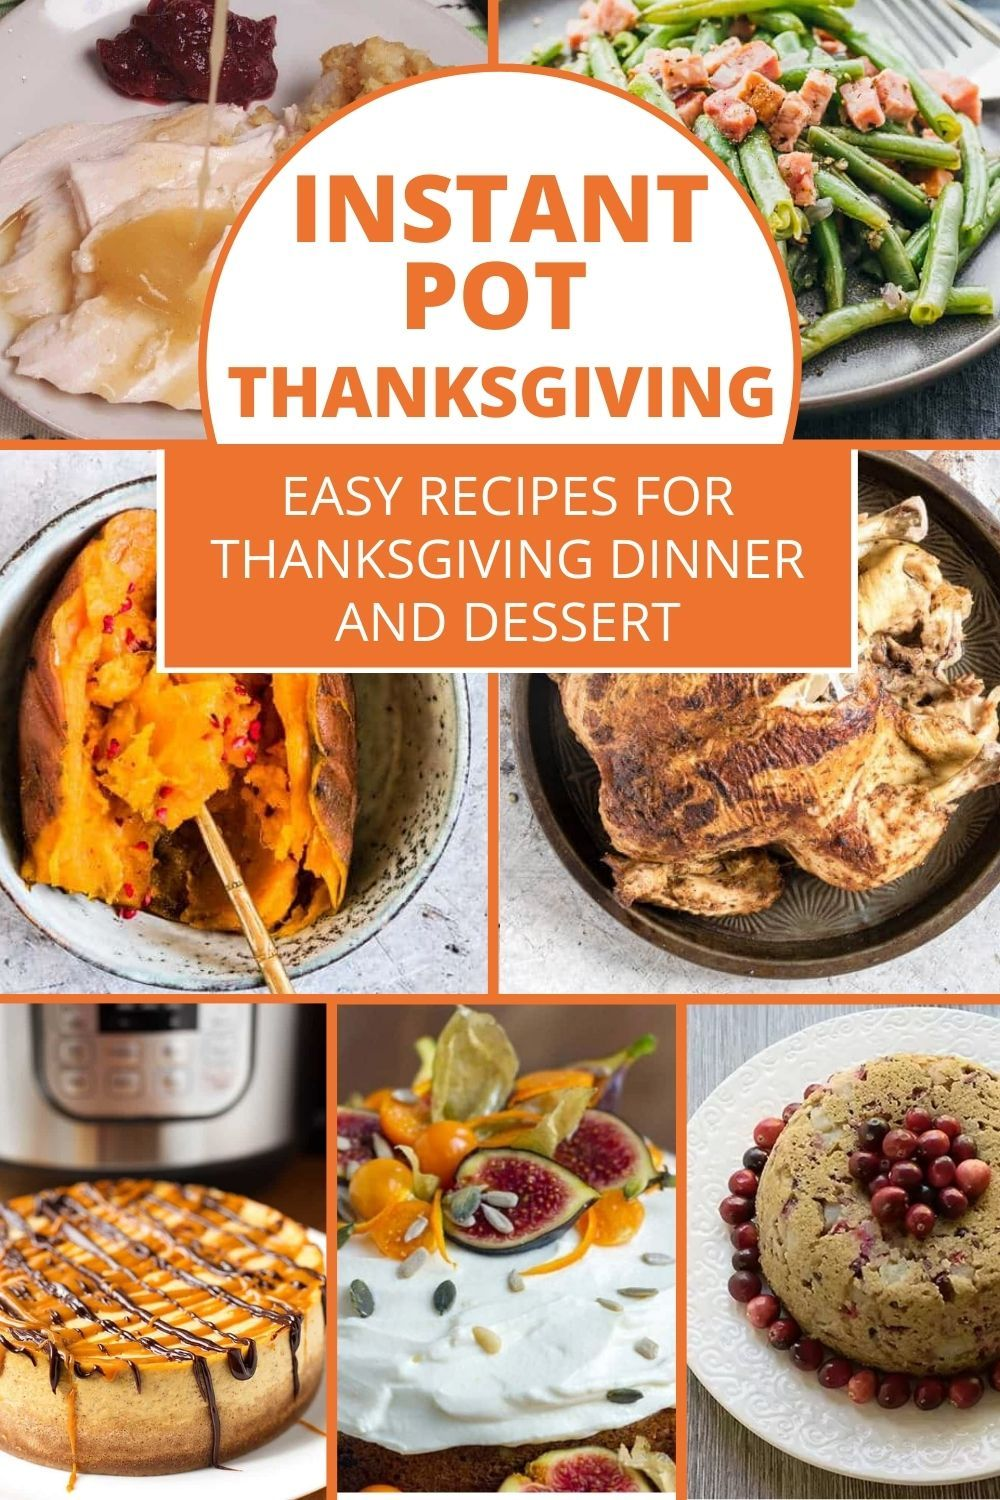 Easy Instant Pot Thanksgiving Recipes In 2020 Thanksgiving Recipes Thanksgiving Dinner Recipes Recipes